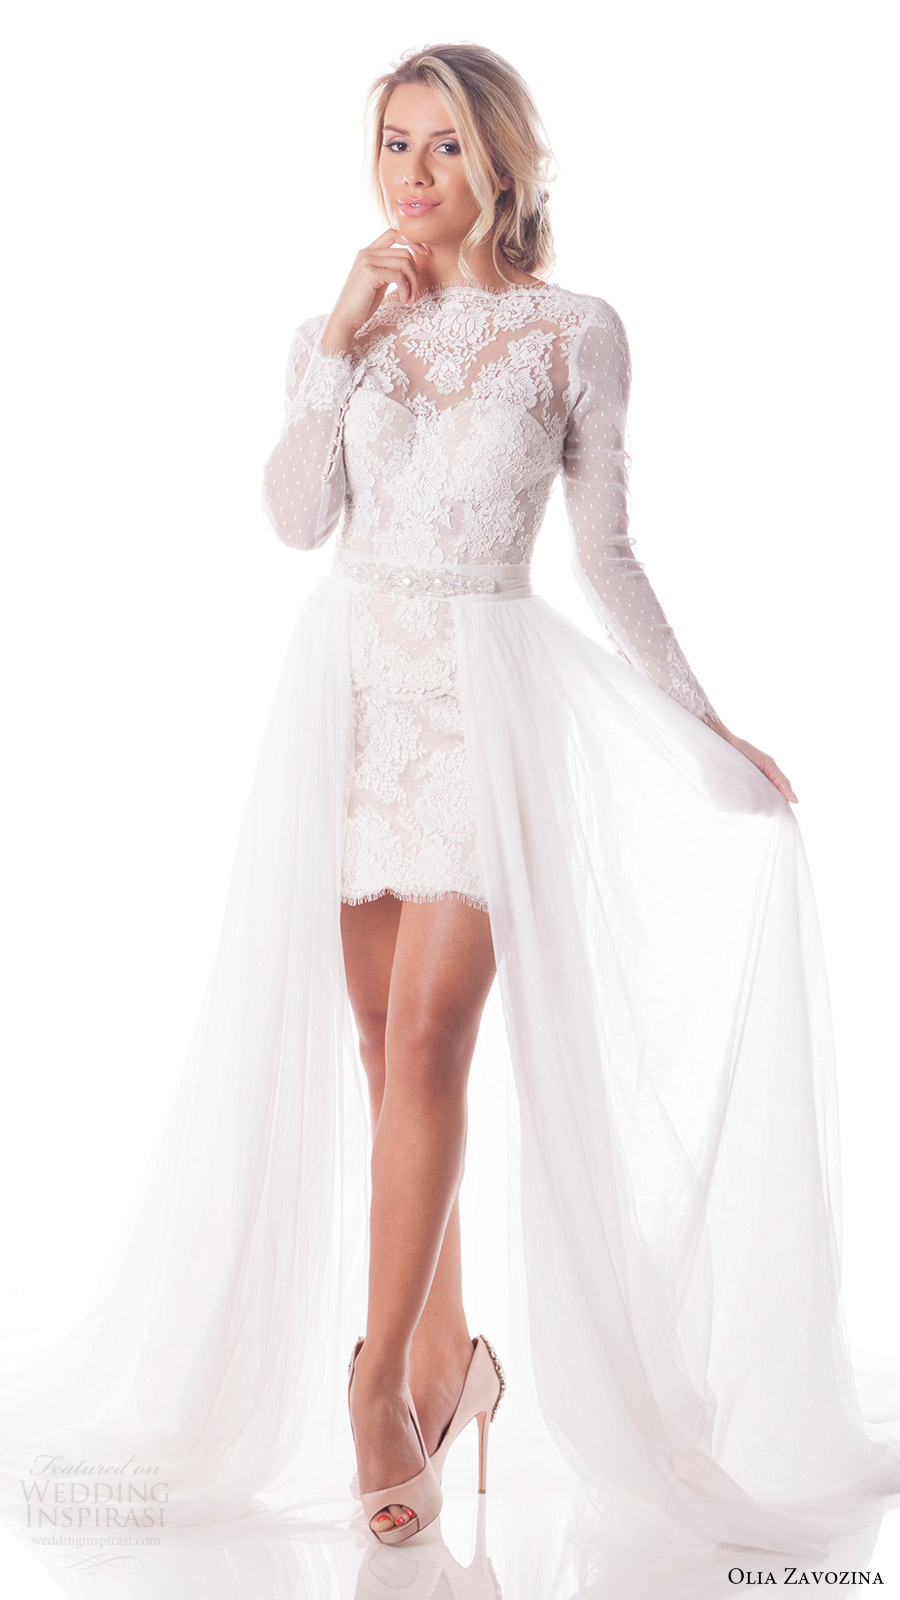 Where To Buy A Nice Dress For A Wedding